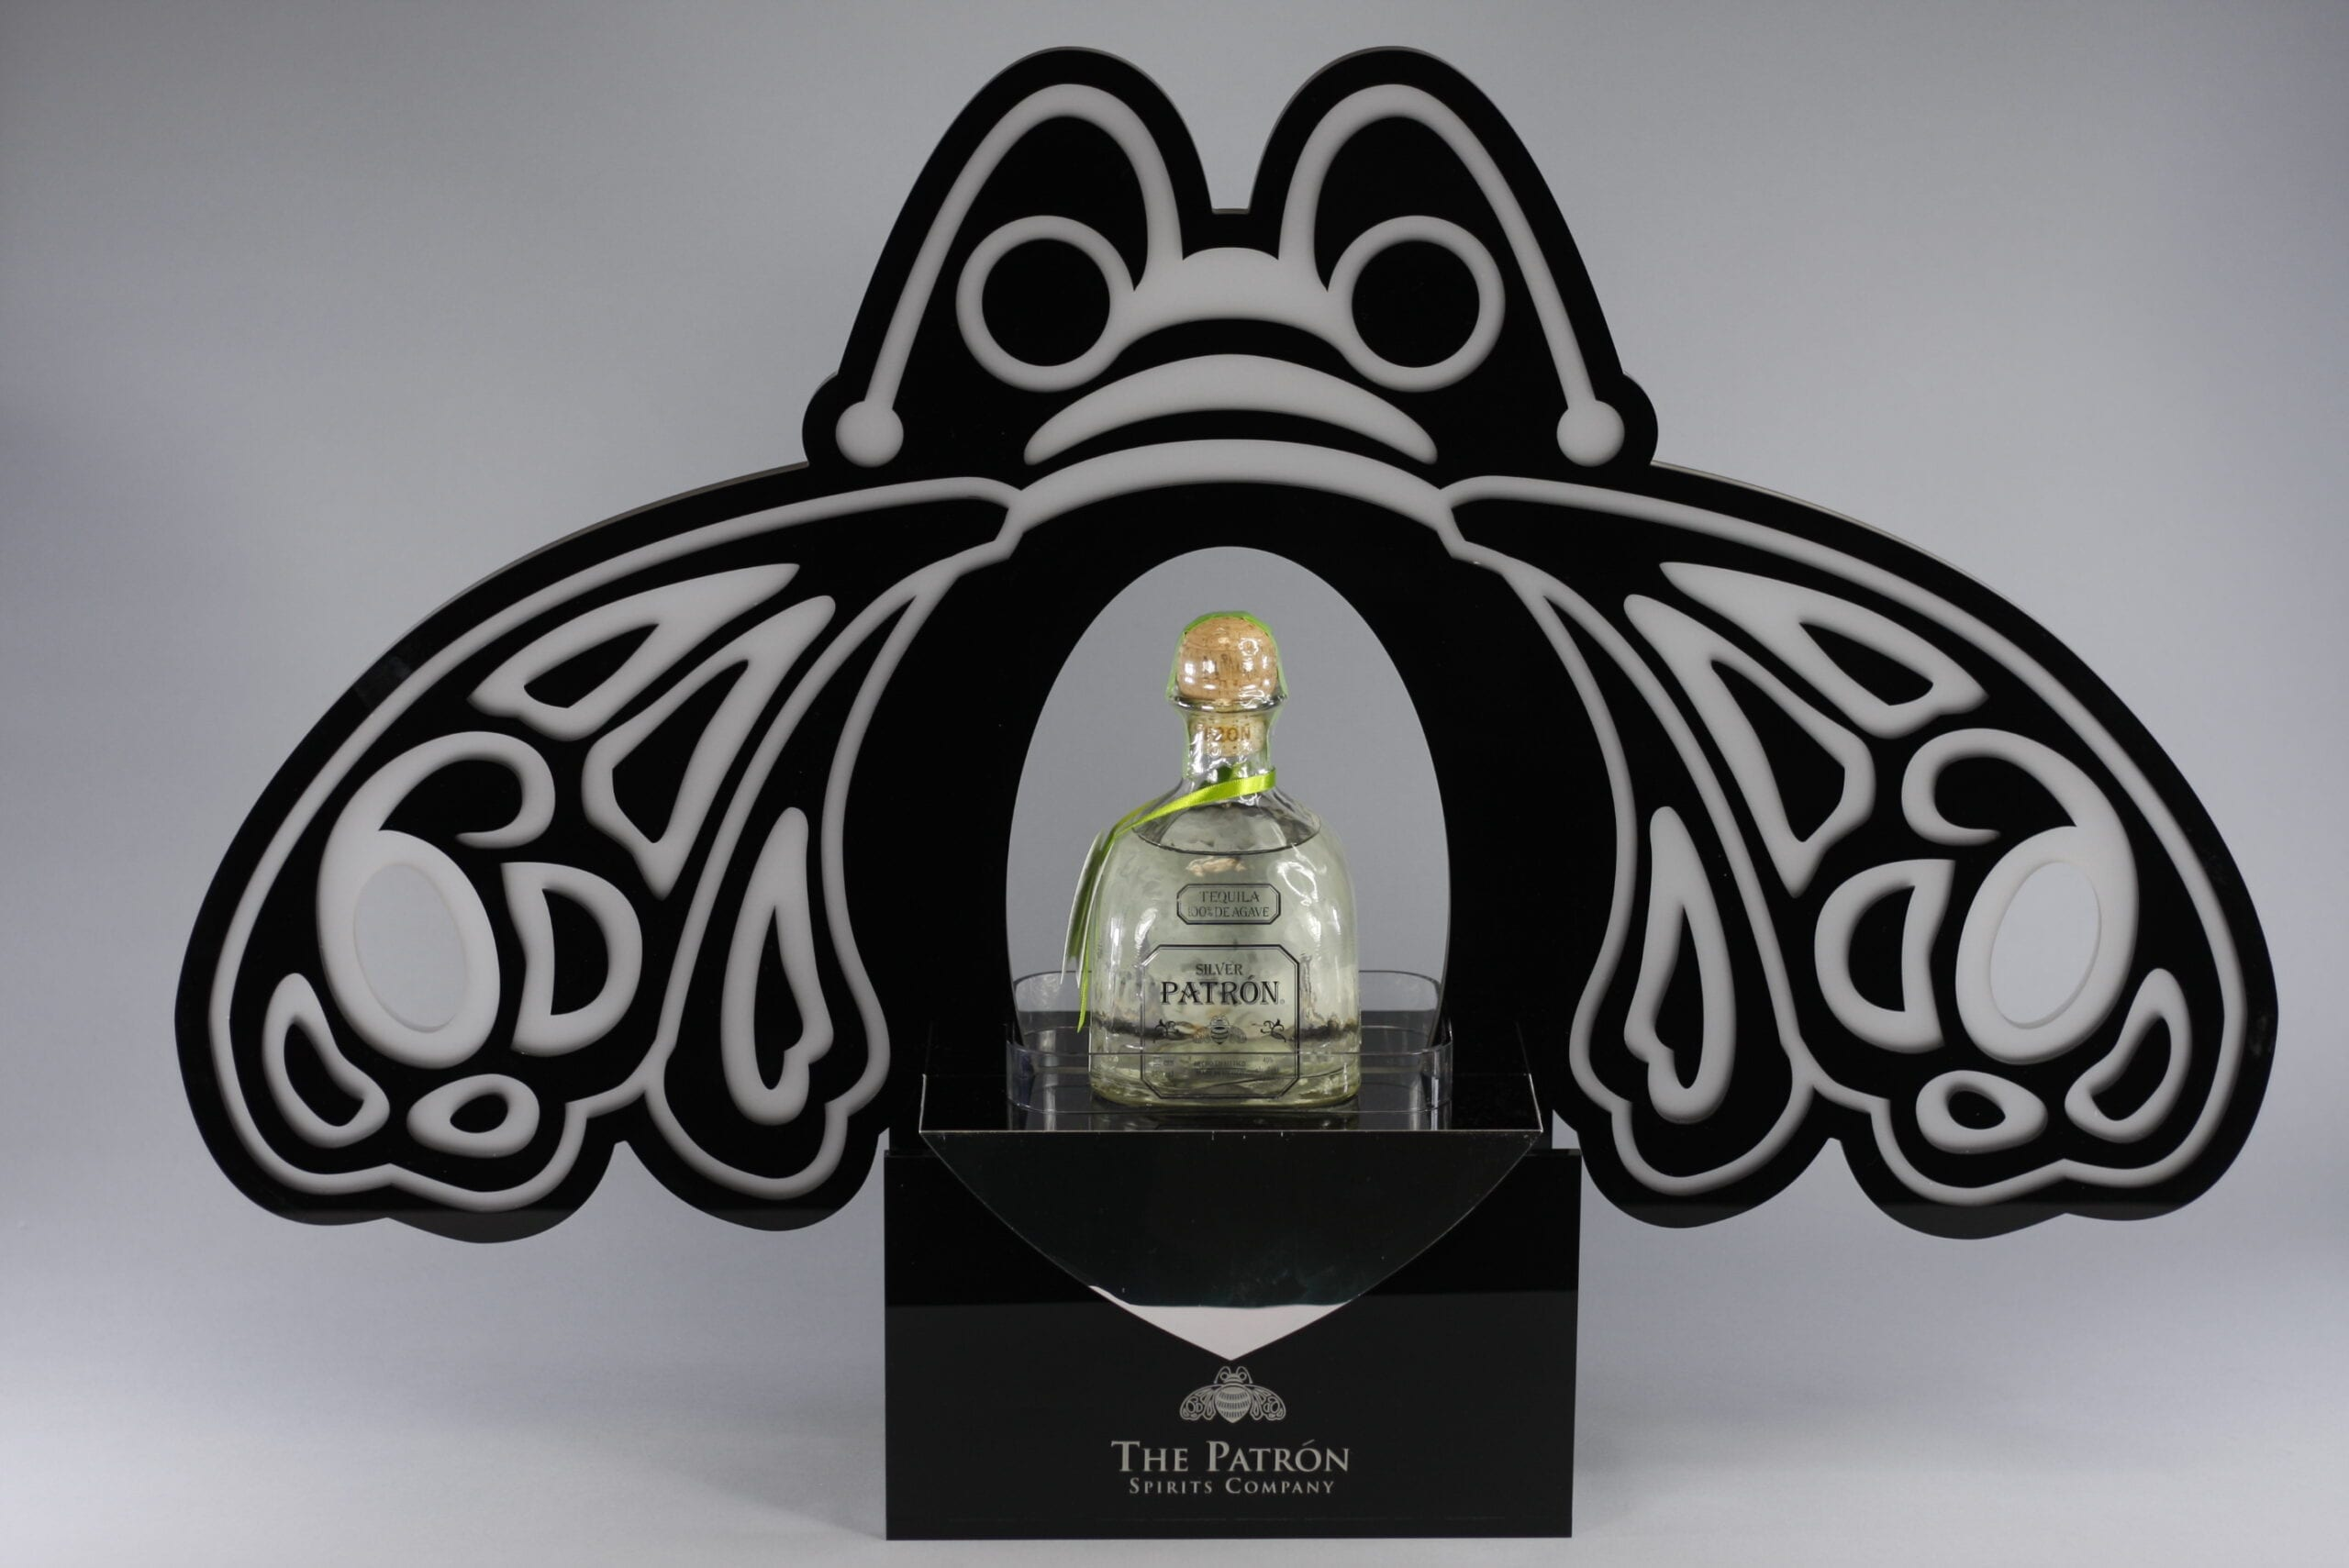 At PPD&G, through every step of the design process we continue to push the boundaries, exemplified by this cutting edge acrylic bottle display featuring intricate detailing and LED lighting to draw in potential customers.